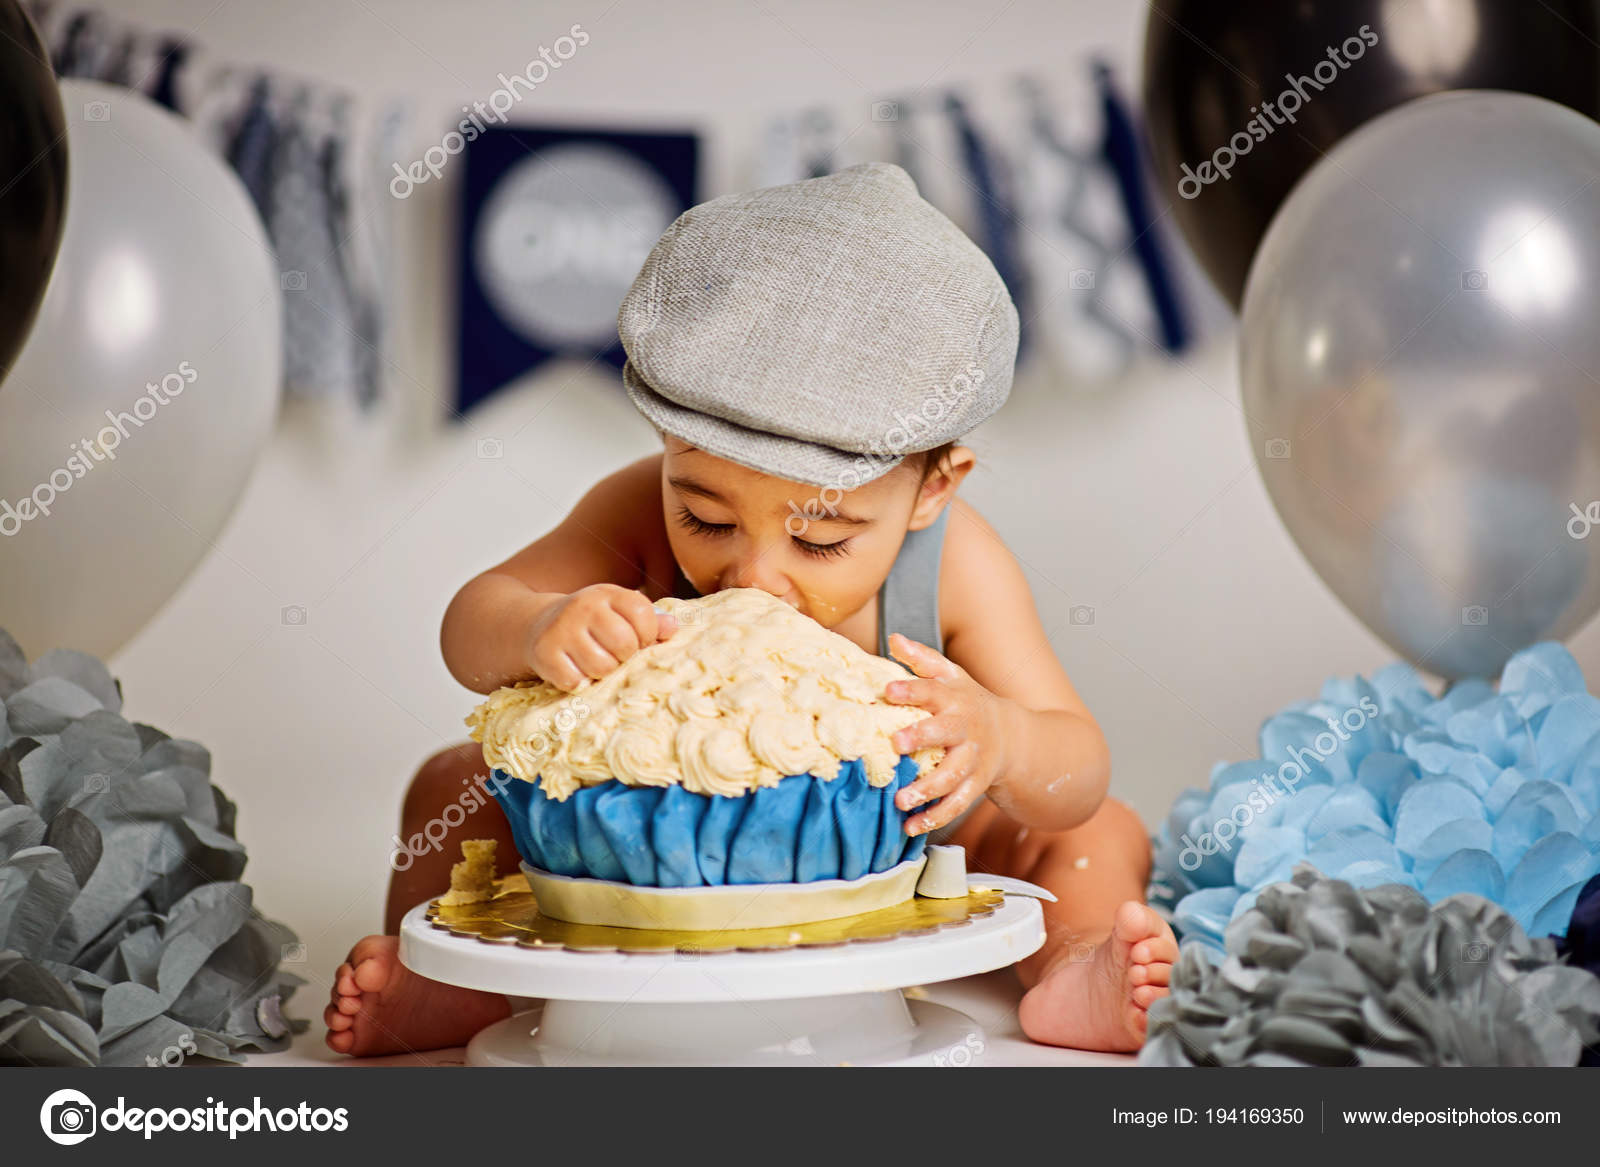 Magnificent Images Birthday Cake For One Year Old Baby Boy One Year Old Funny Birthday Cards Online Elaedamsfinfo